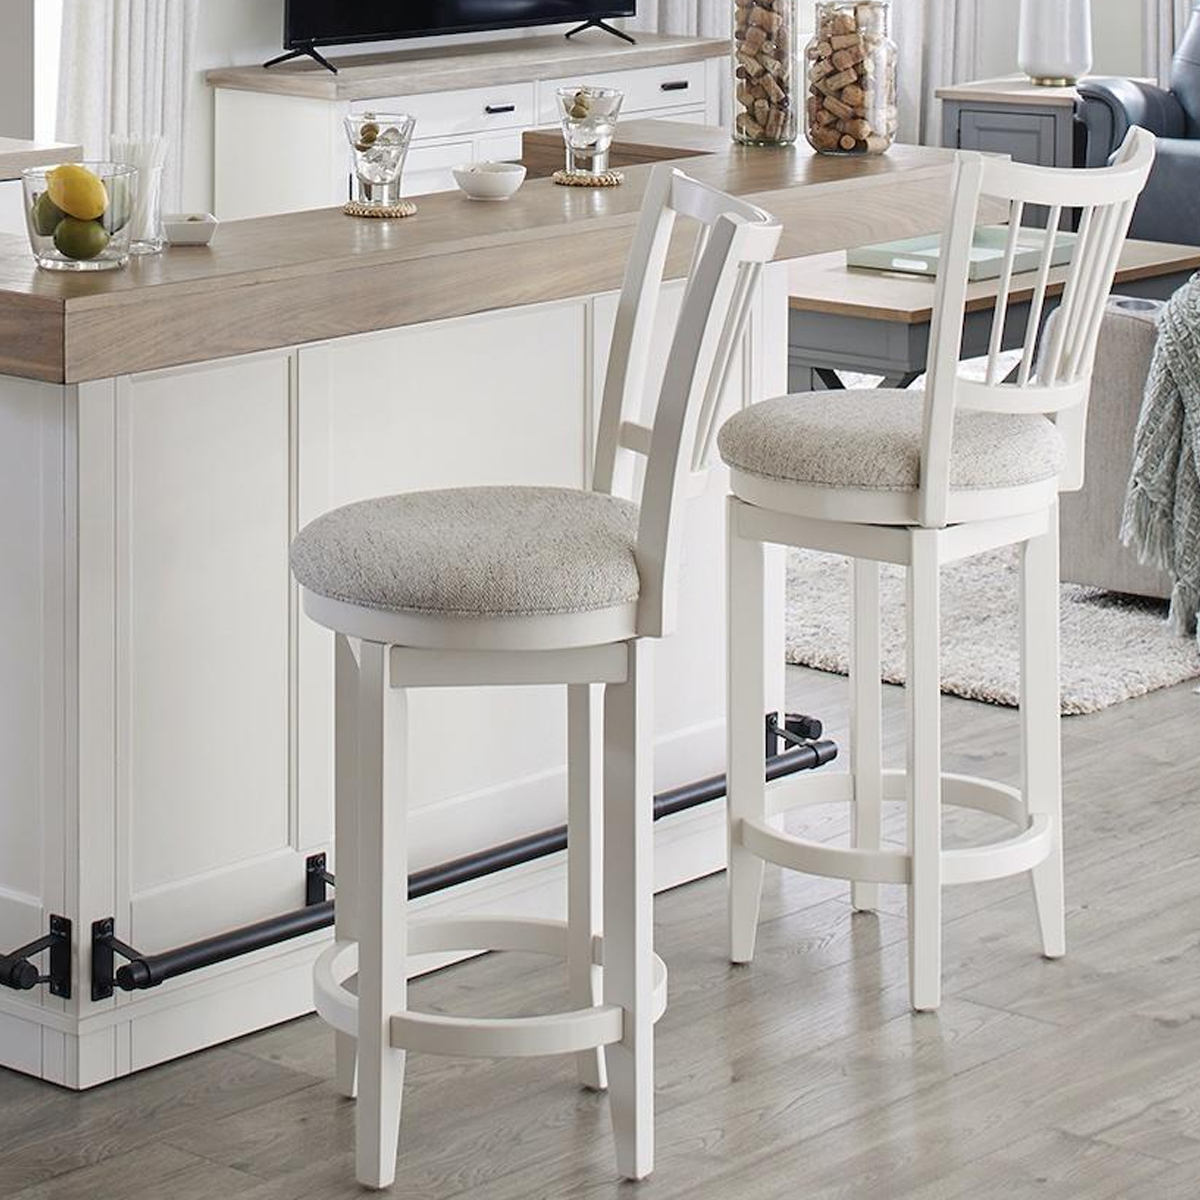 Picture of AMERICANA SWIVEL SPINDLE BACK BARSTOOL